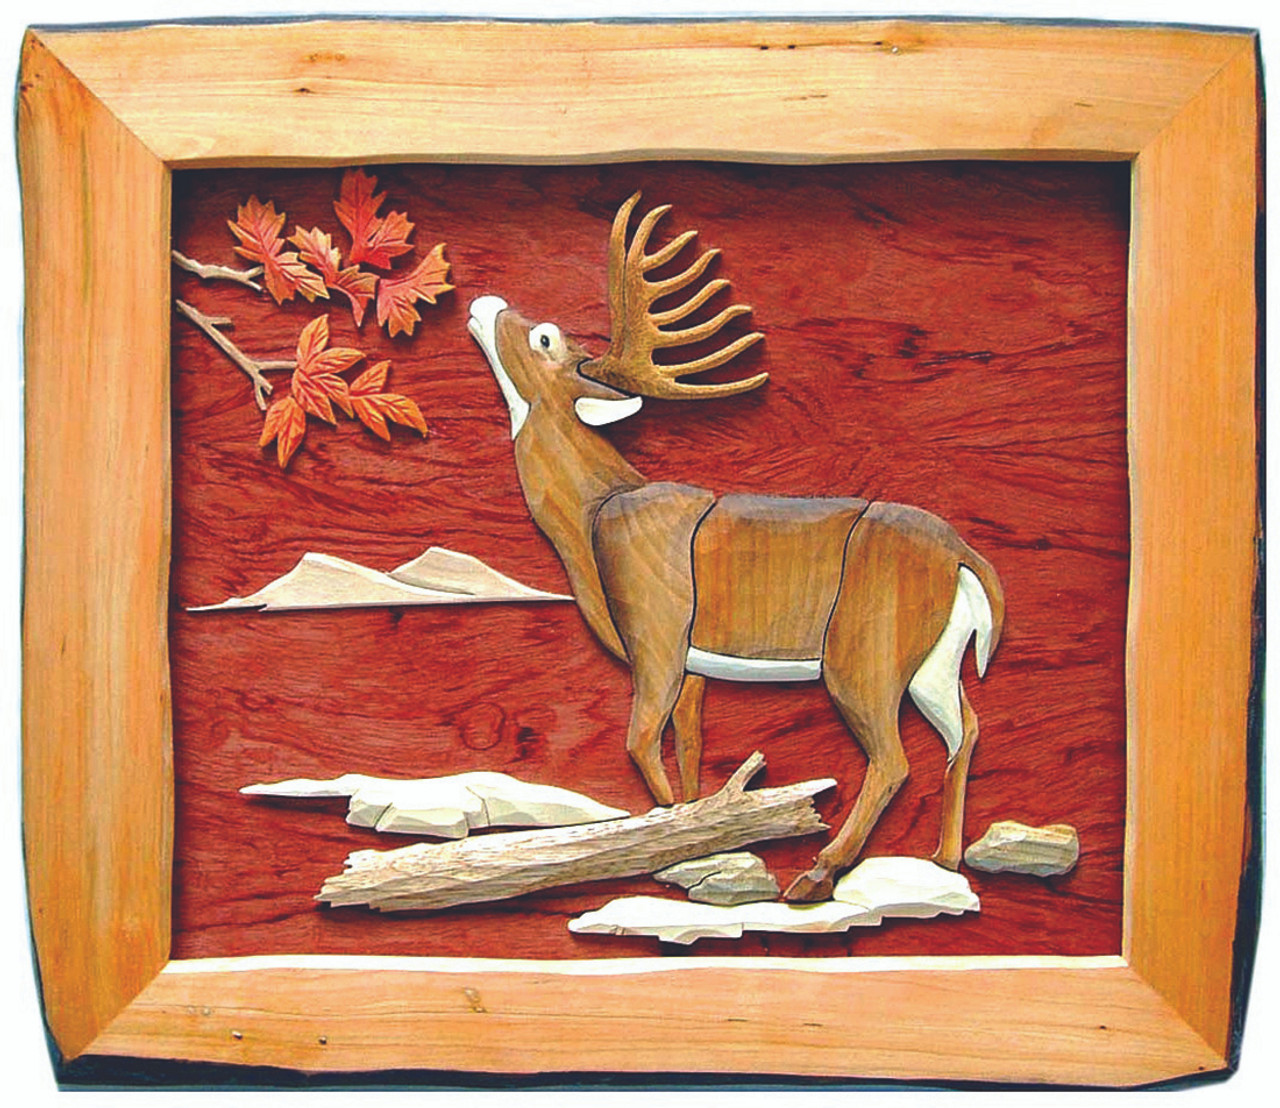 Buck Eating Hand Crafted Intarsia Wood Art Wall Hanging 20 X 18 X 2 Inches